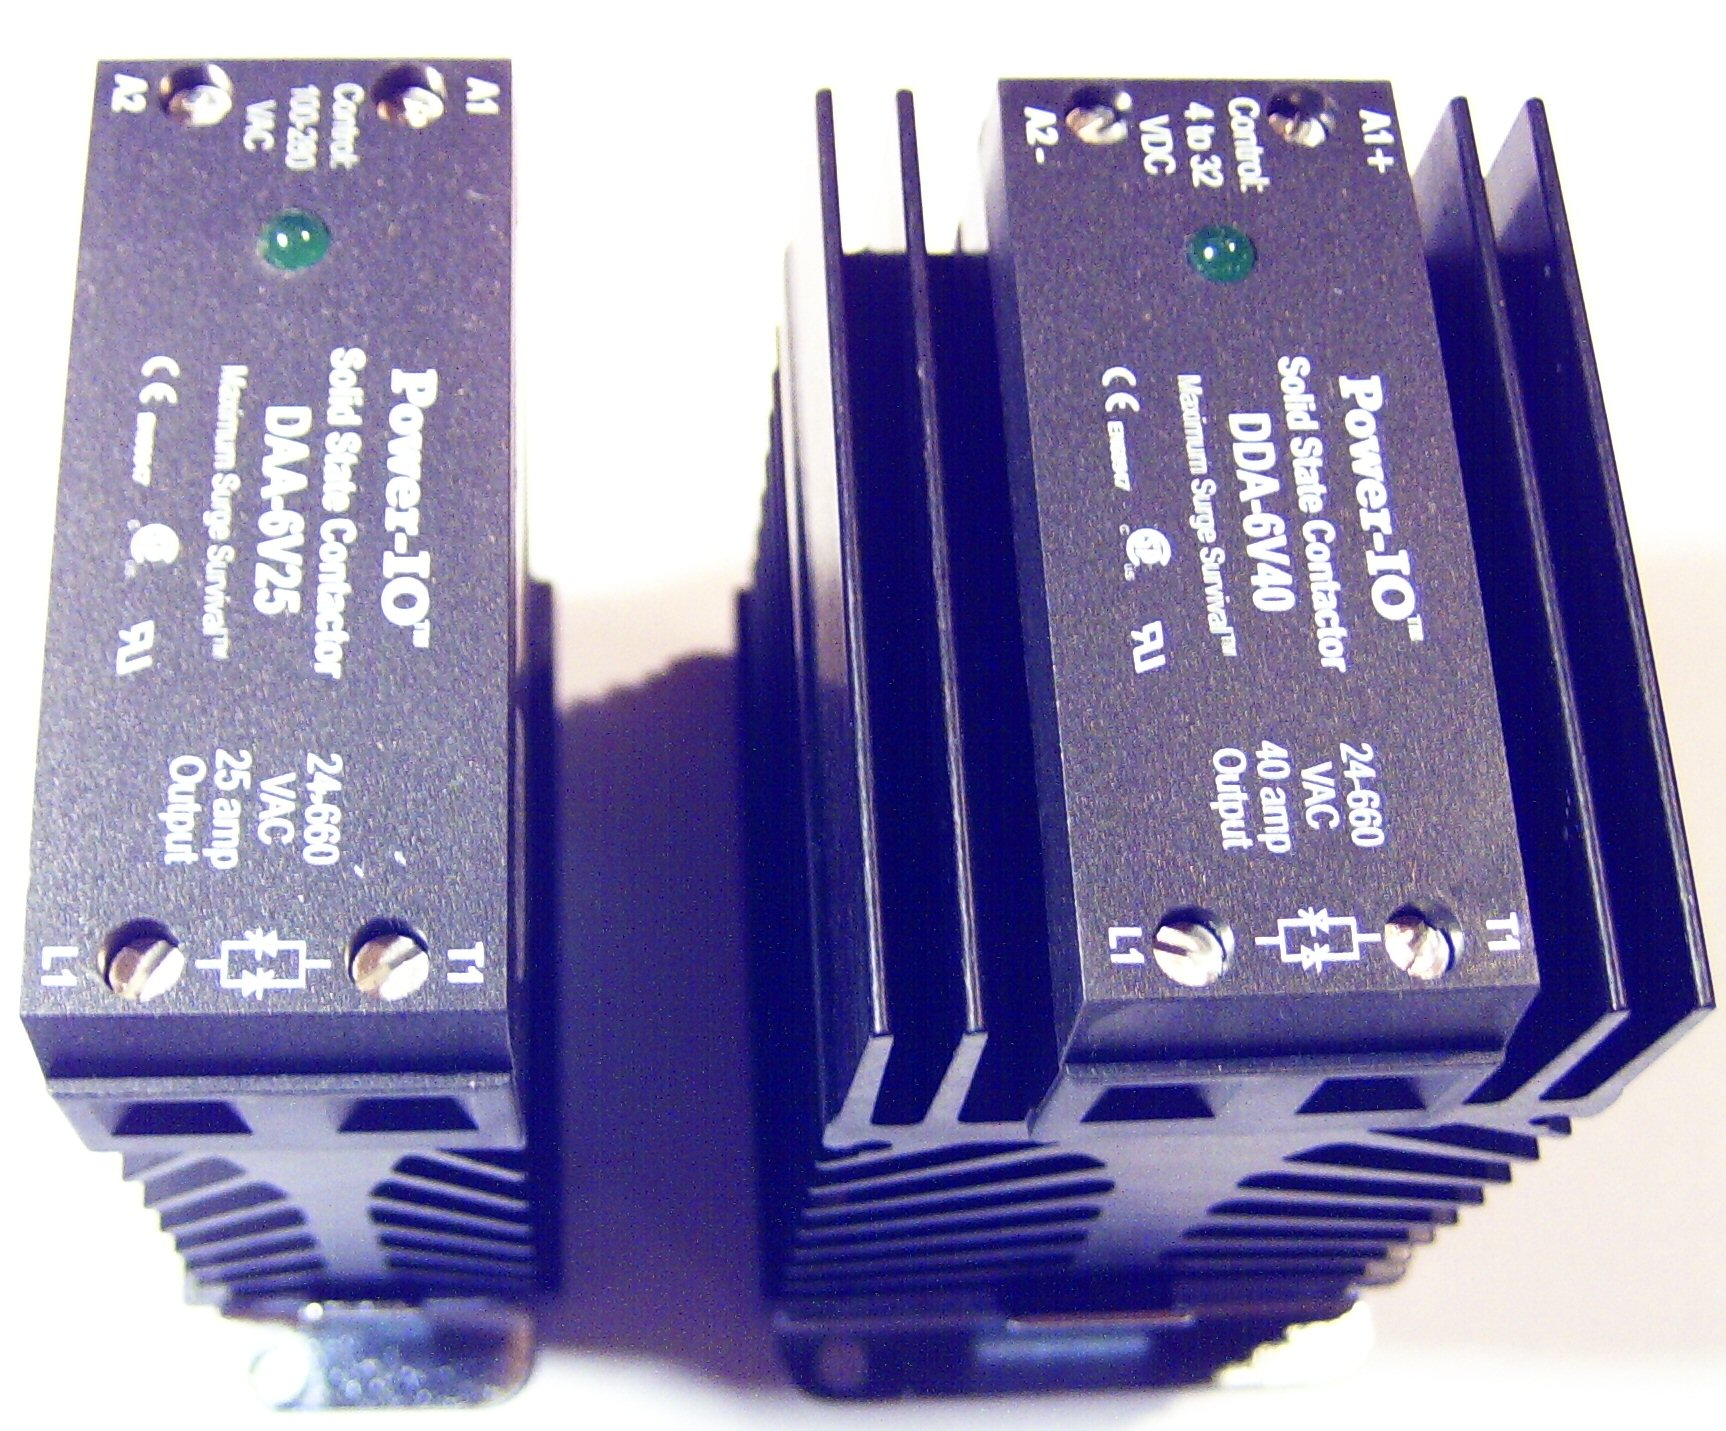 3 Relays Solid State Relay Basics Http Wikipedia Commons B B4 Contactor